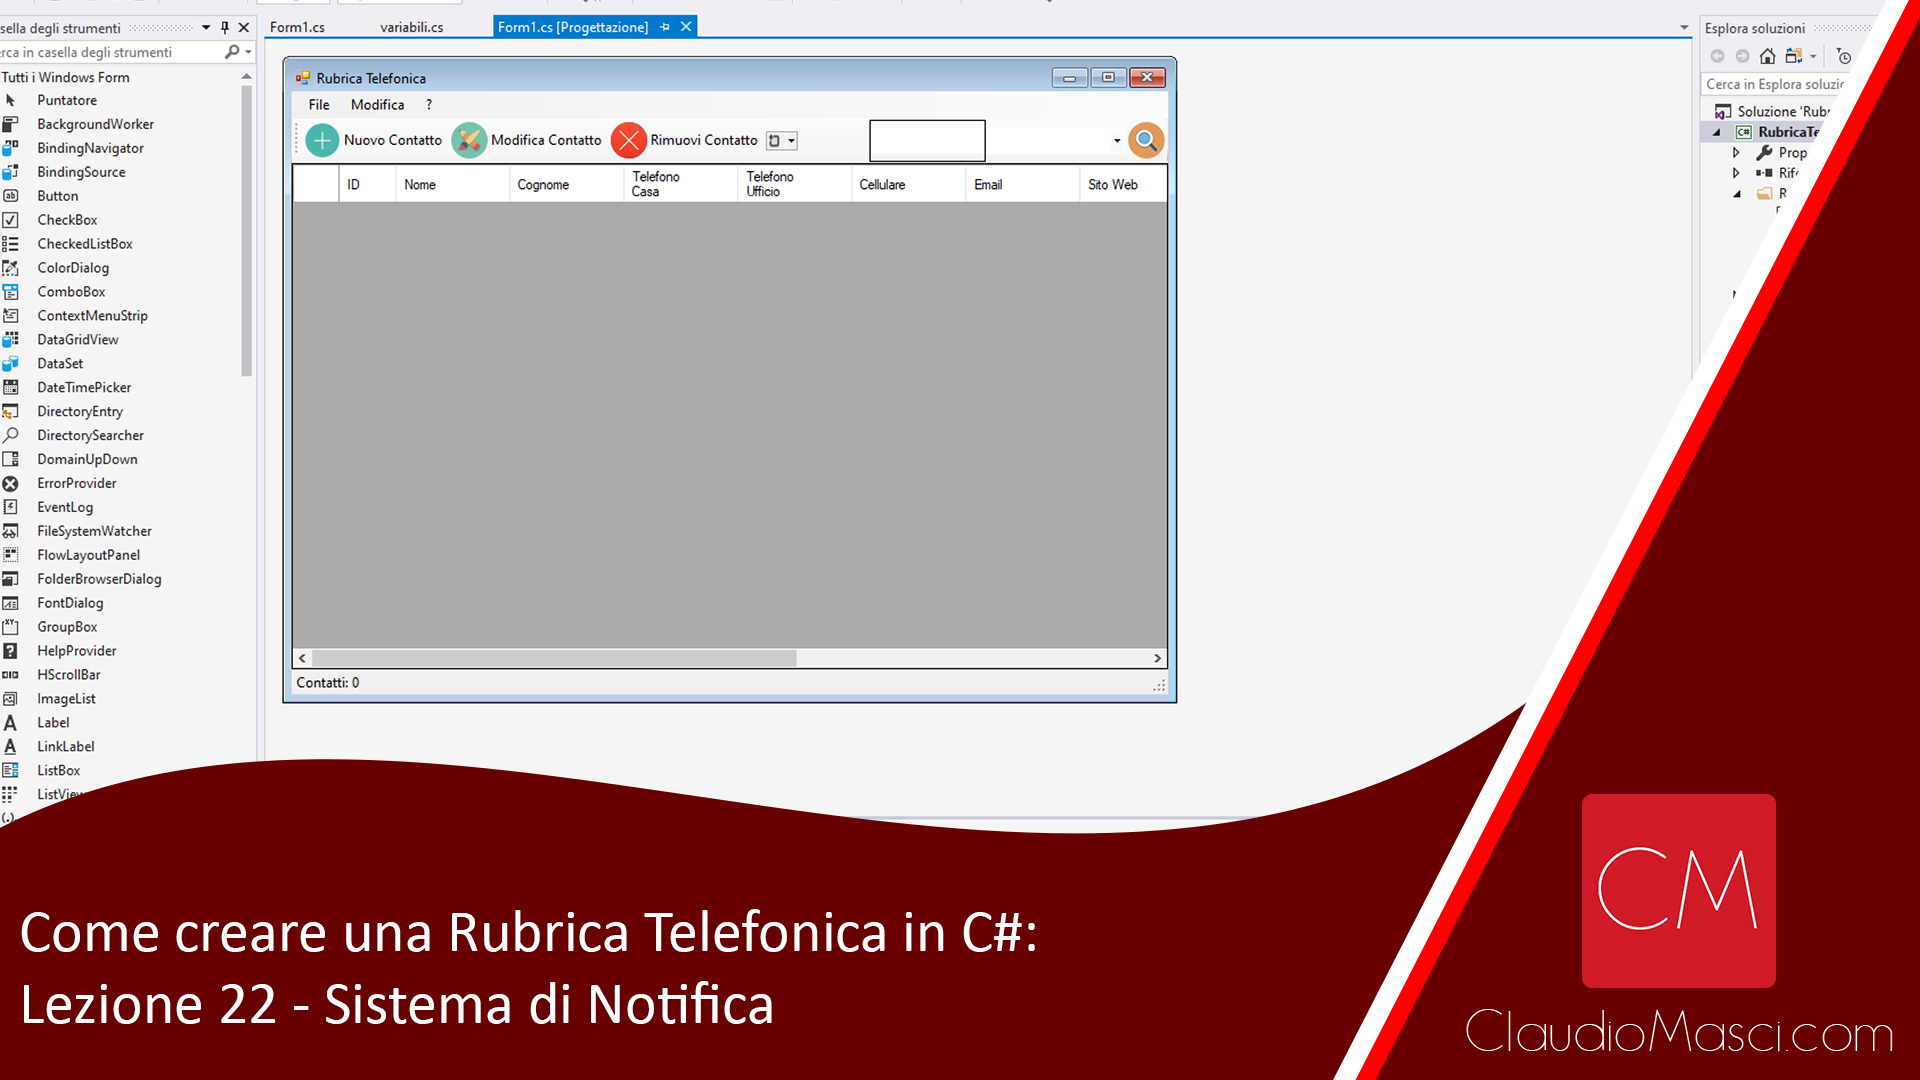 Come creare una Rubrica Telefonica in C# – #22 – Sistema di Notifica